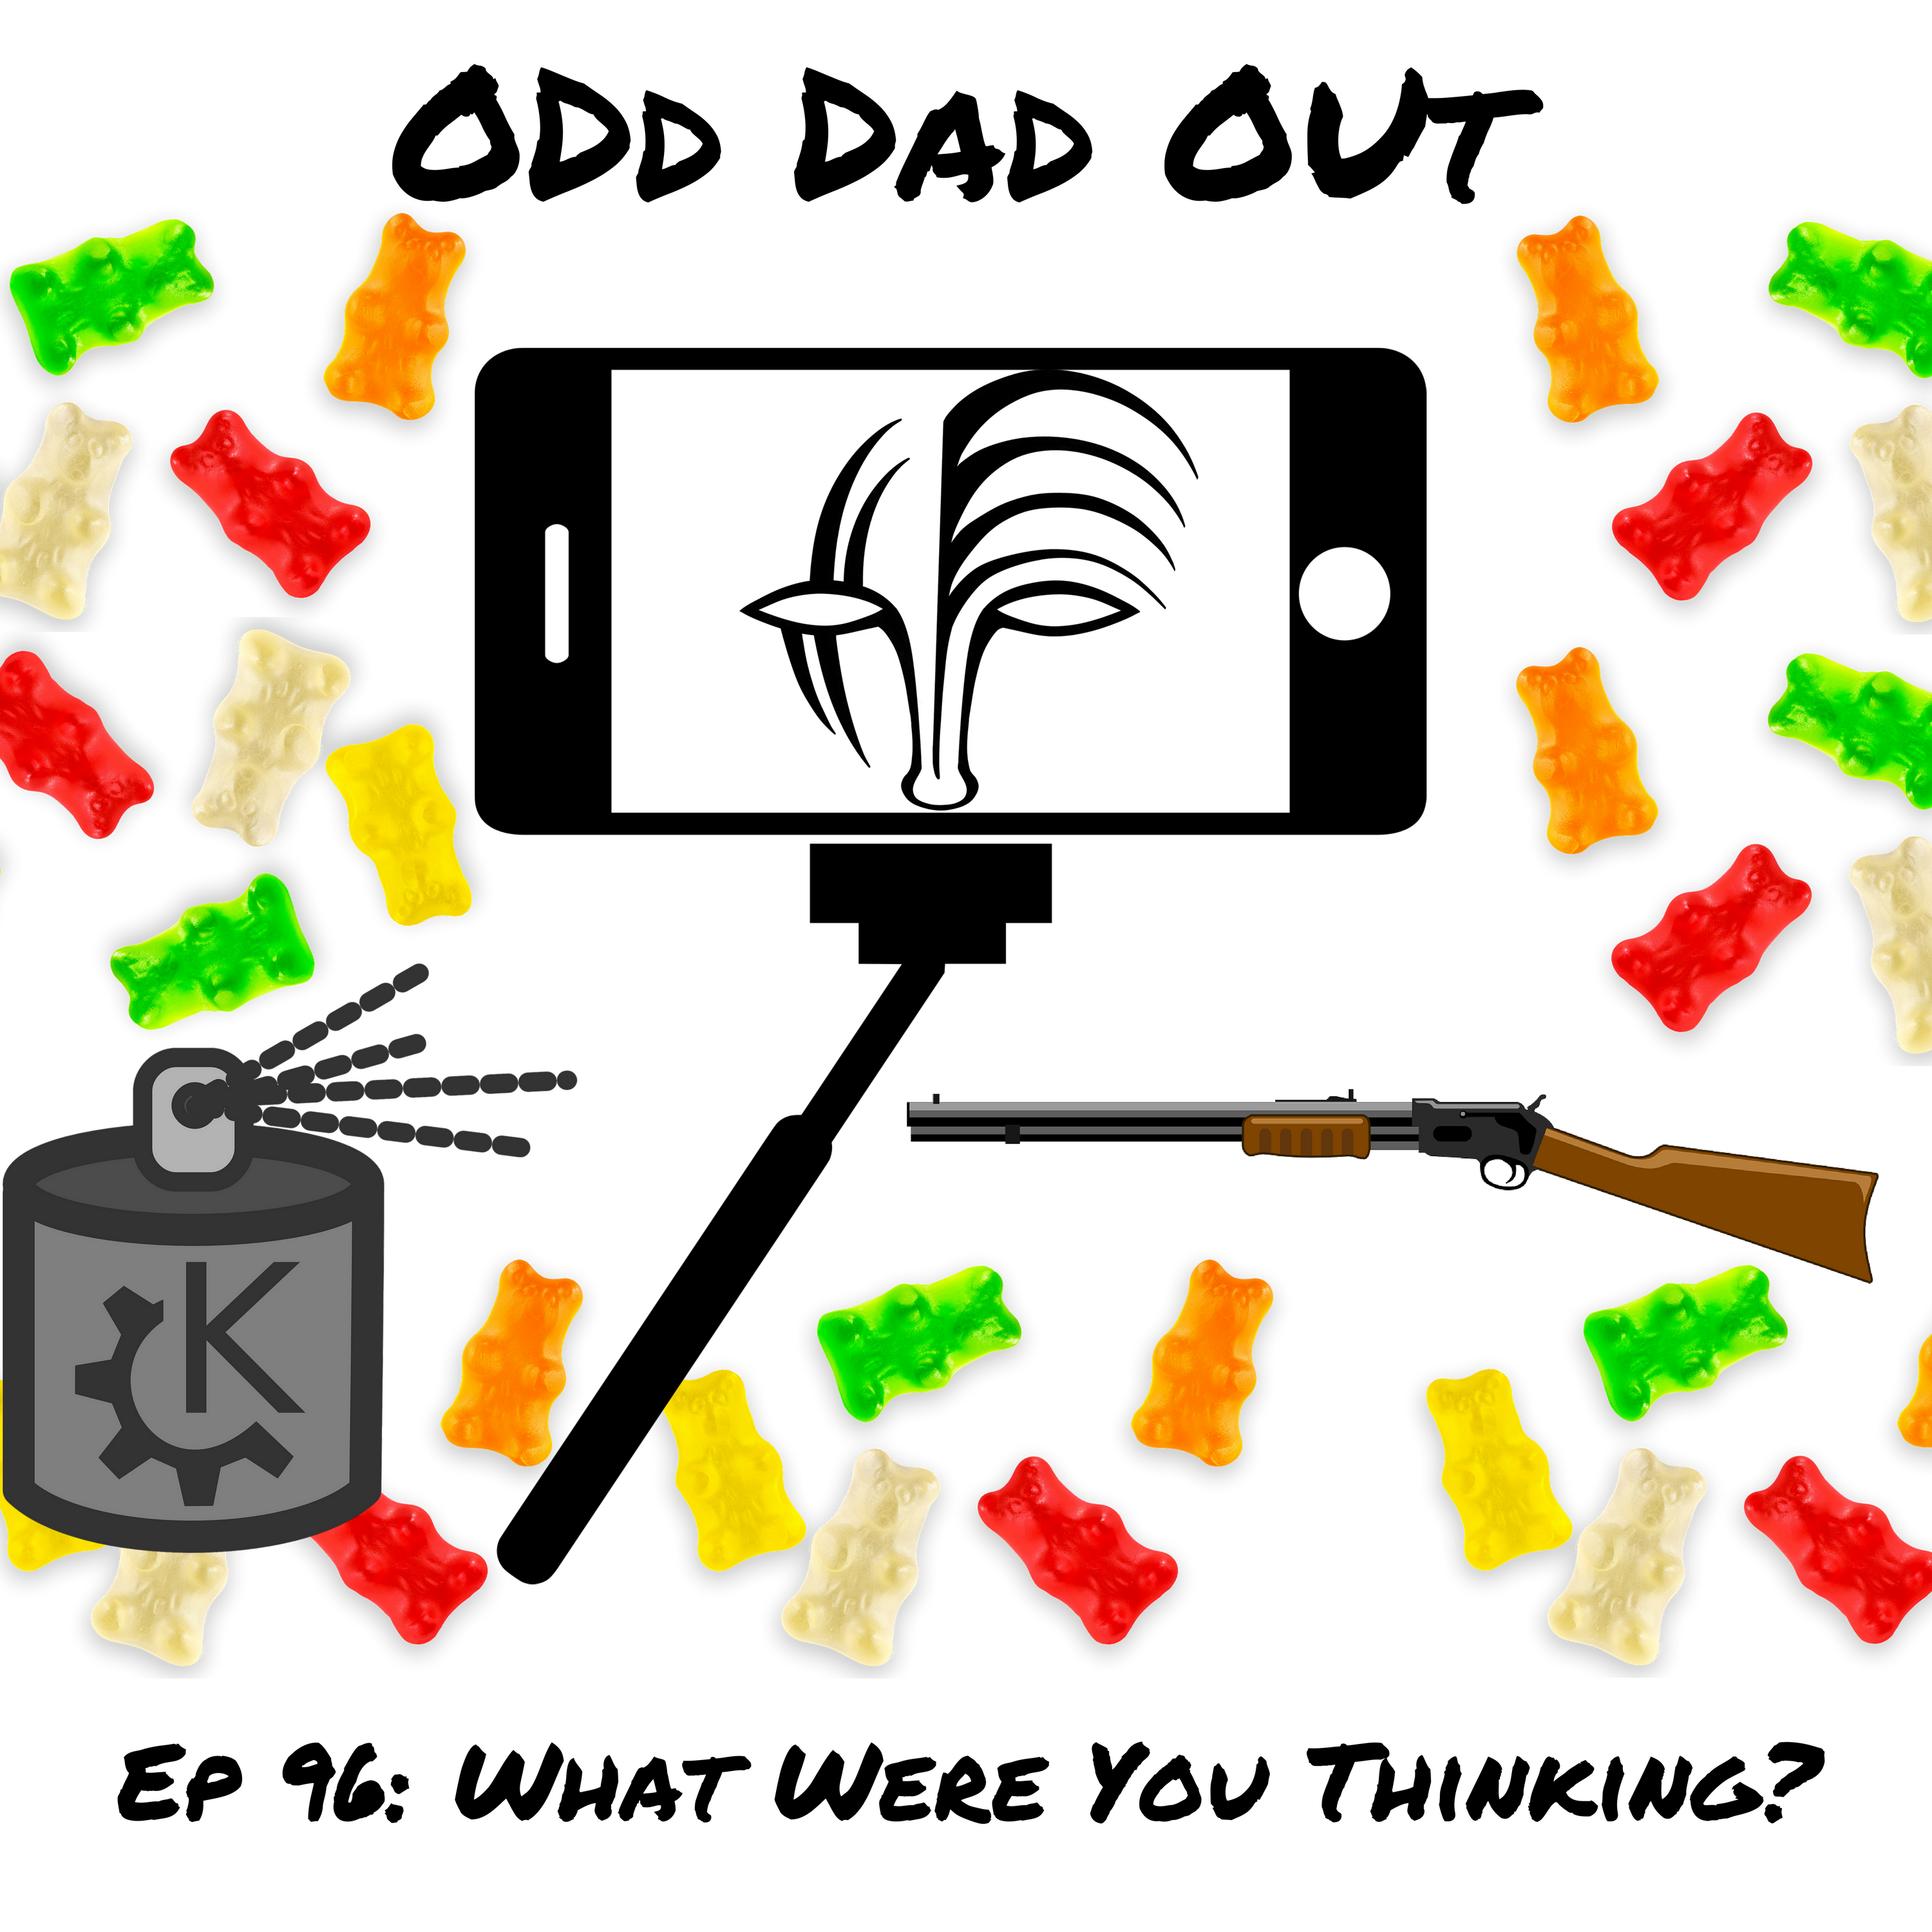 ODO 96: What Were You Thinking